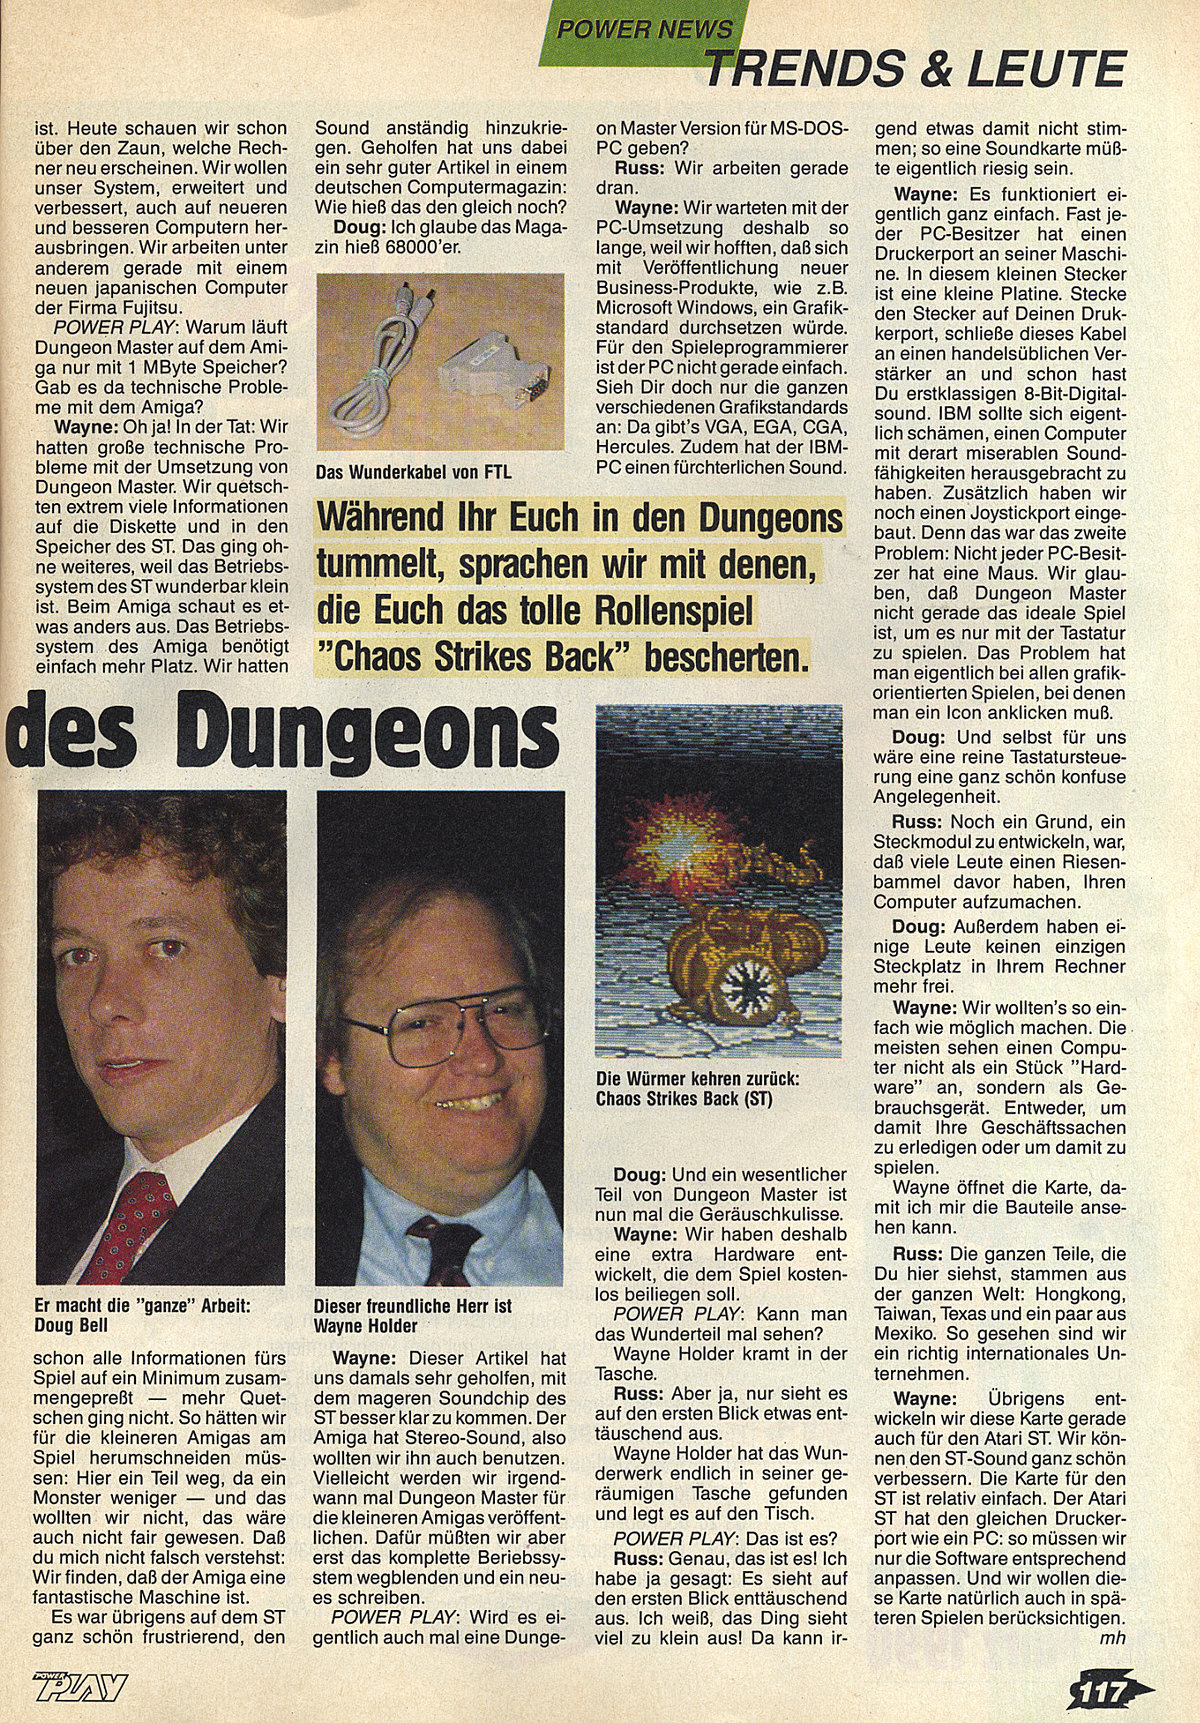 FTL Article published in German magazine 'Power Play', March 1990, Page 117